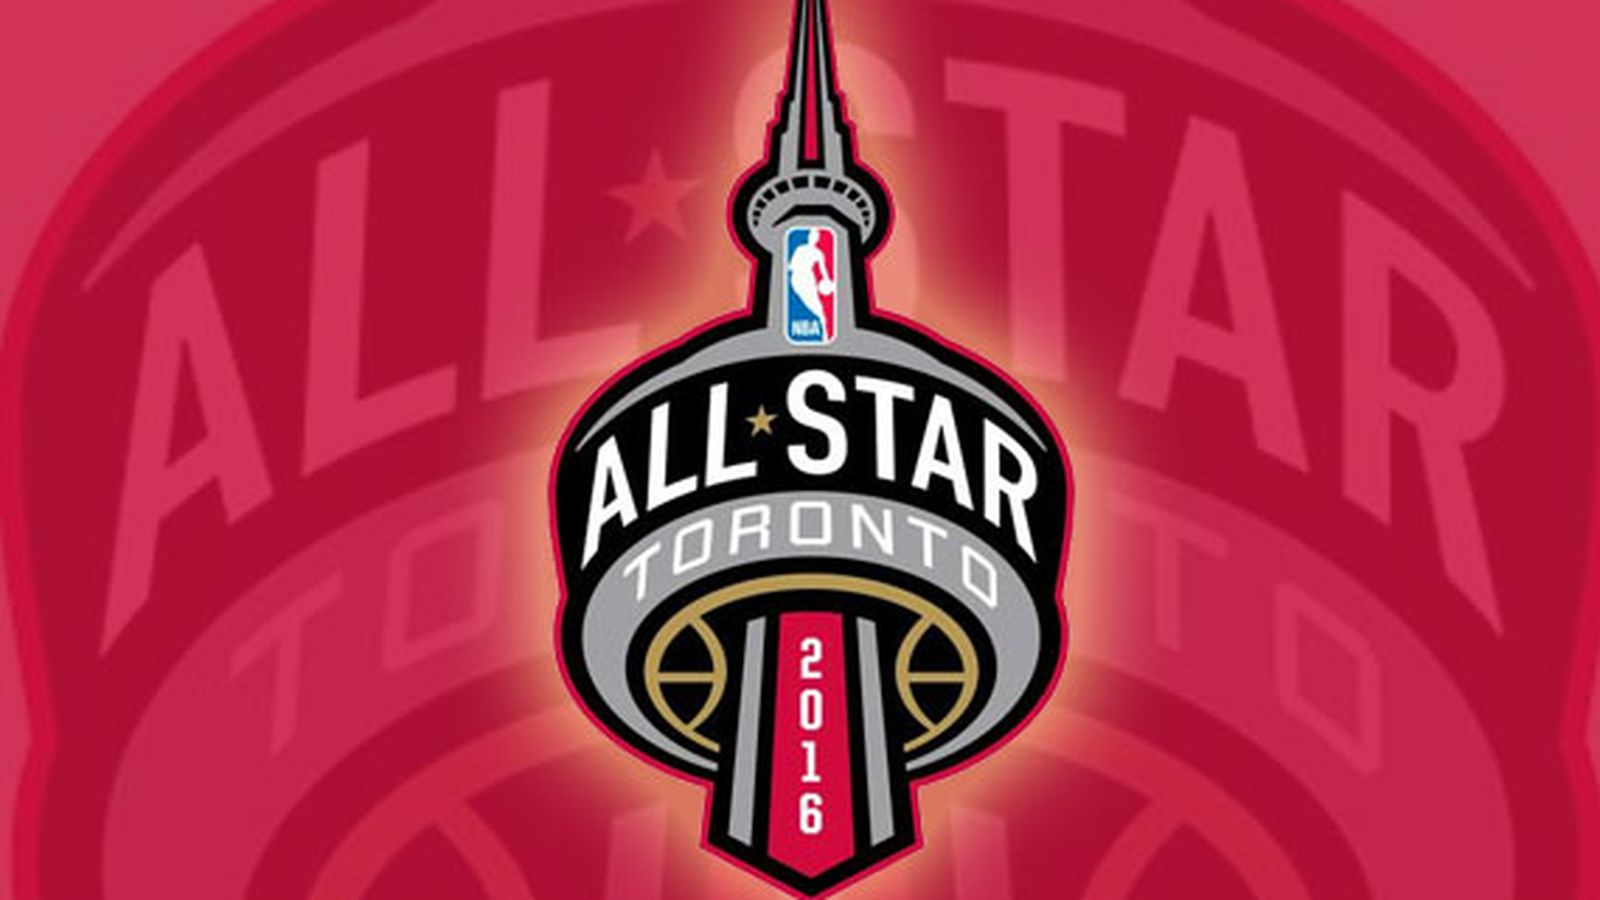 2016-nba-all-star-game-logo1.0.0